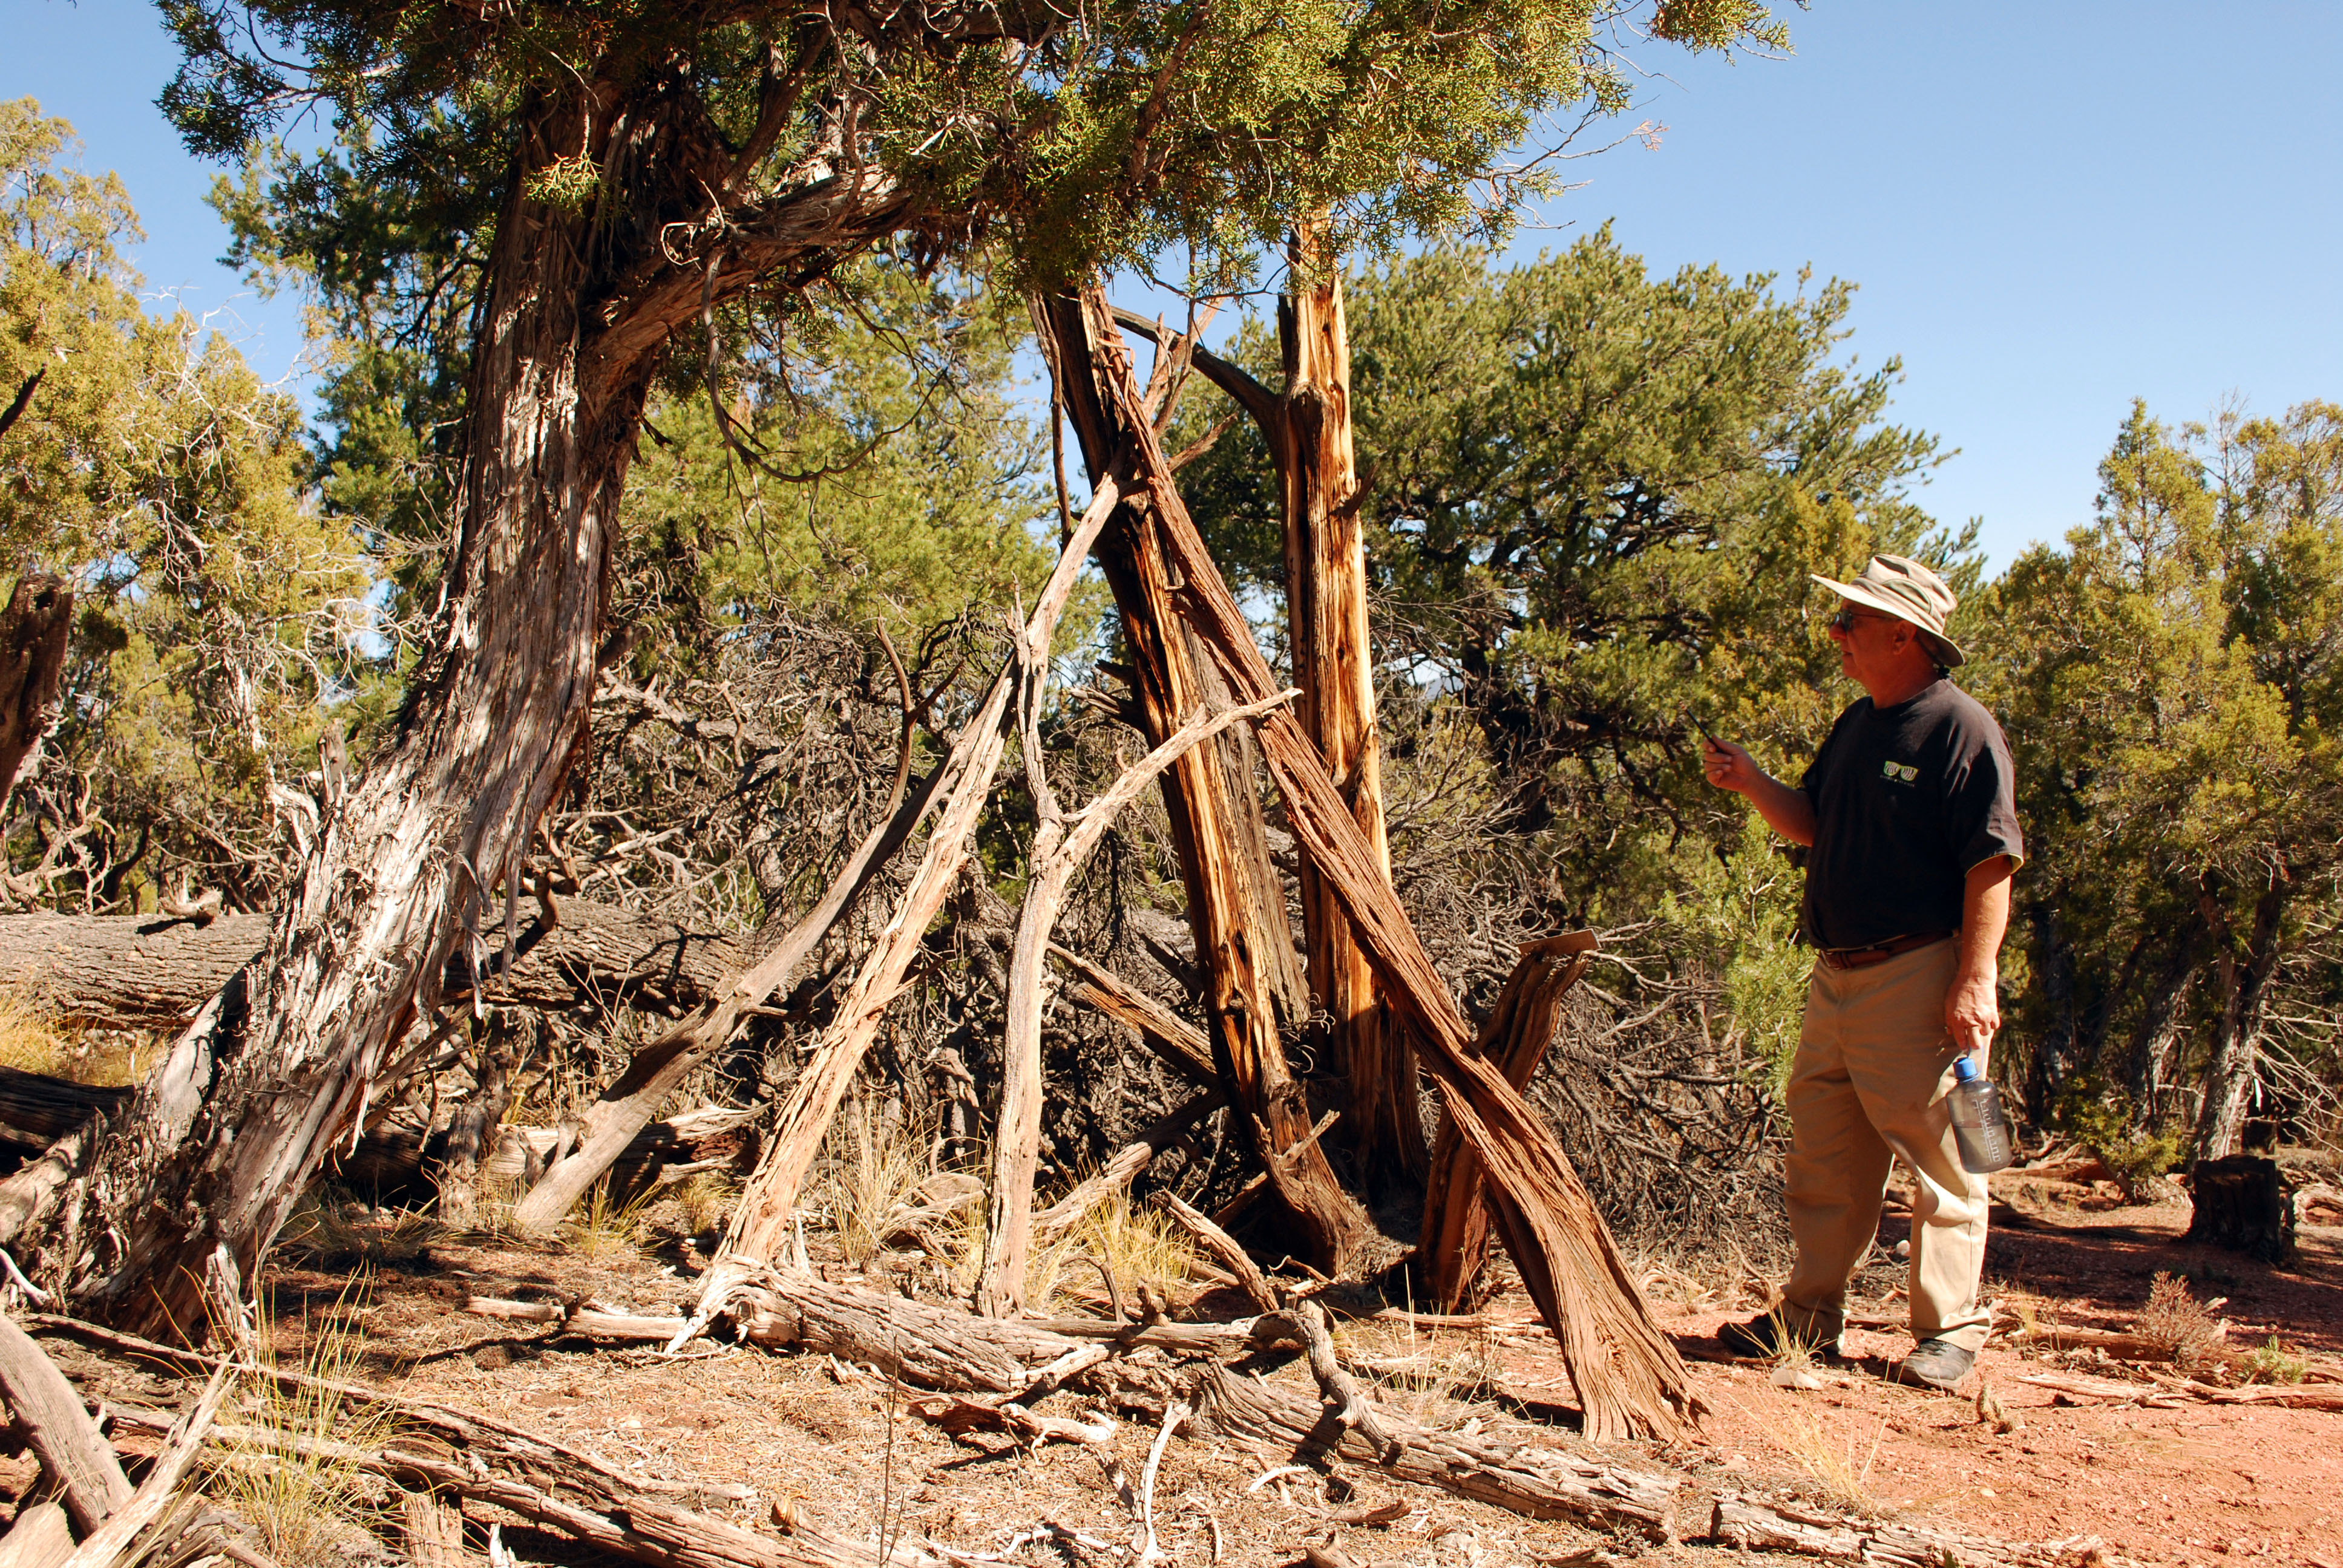 A photo of the remains of a free-standing wickiup is inspected in Mesa County, Colorado.